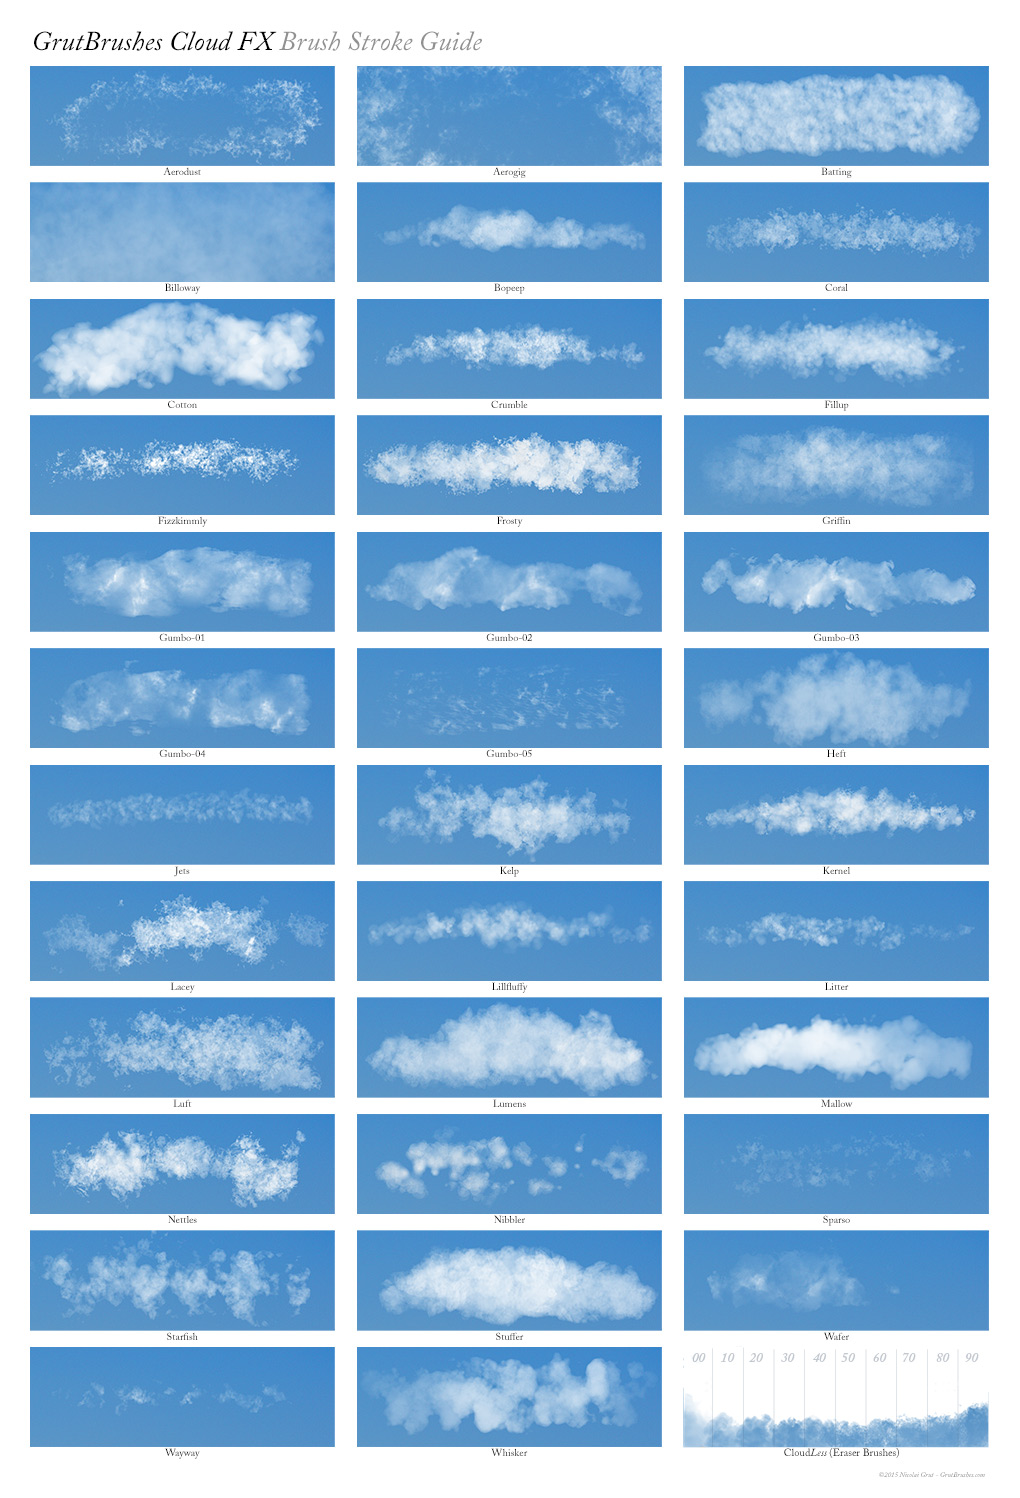 Sample Brush Strokes of all 50 of the GrutBrushes Cloud Brushes and Tools